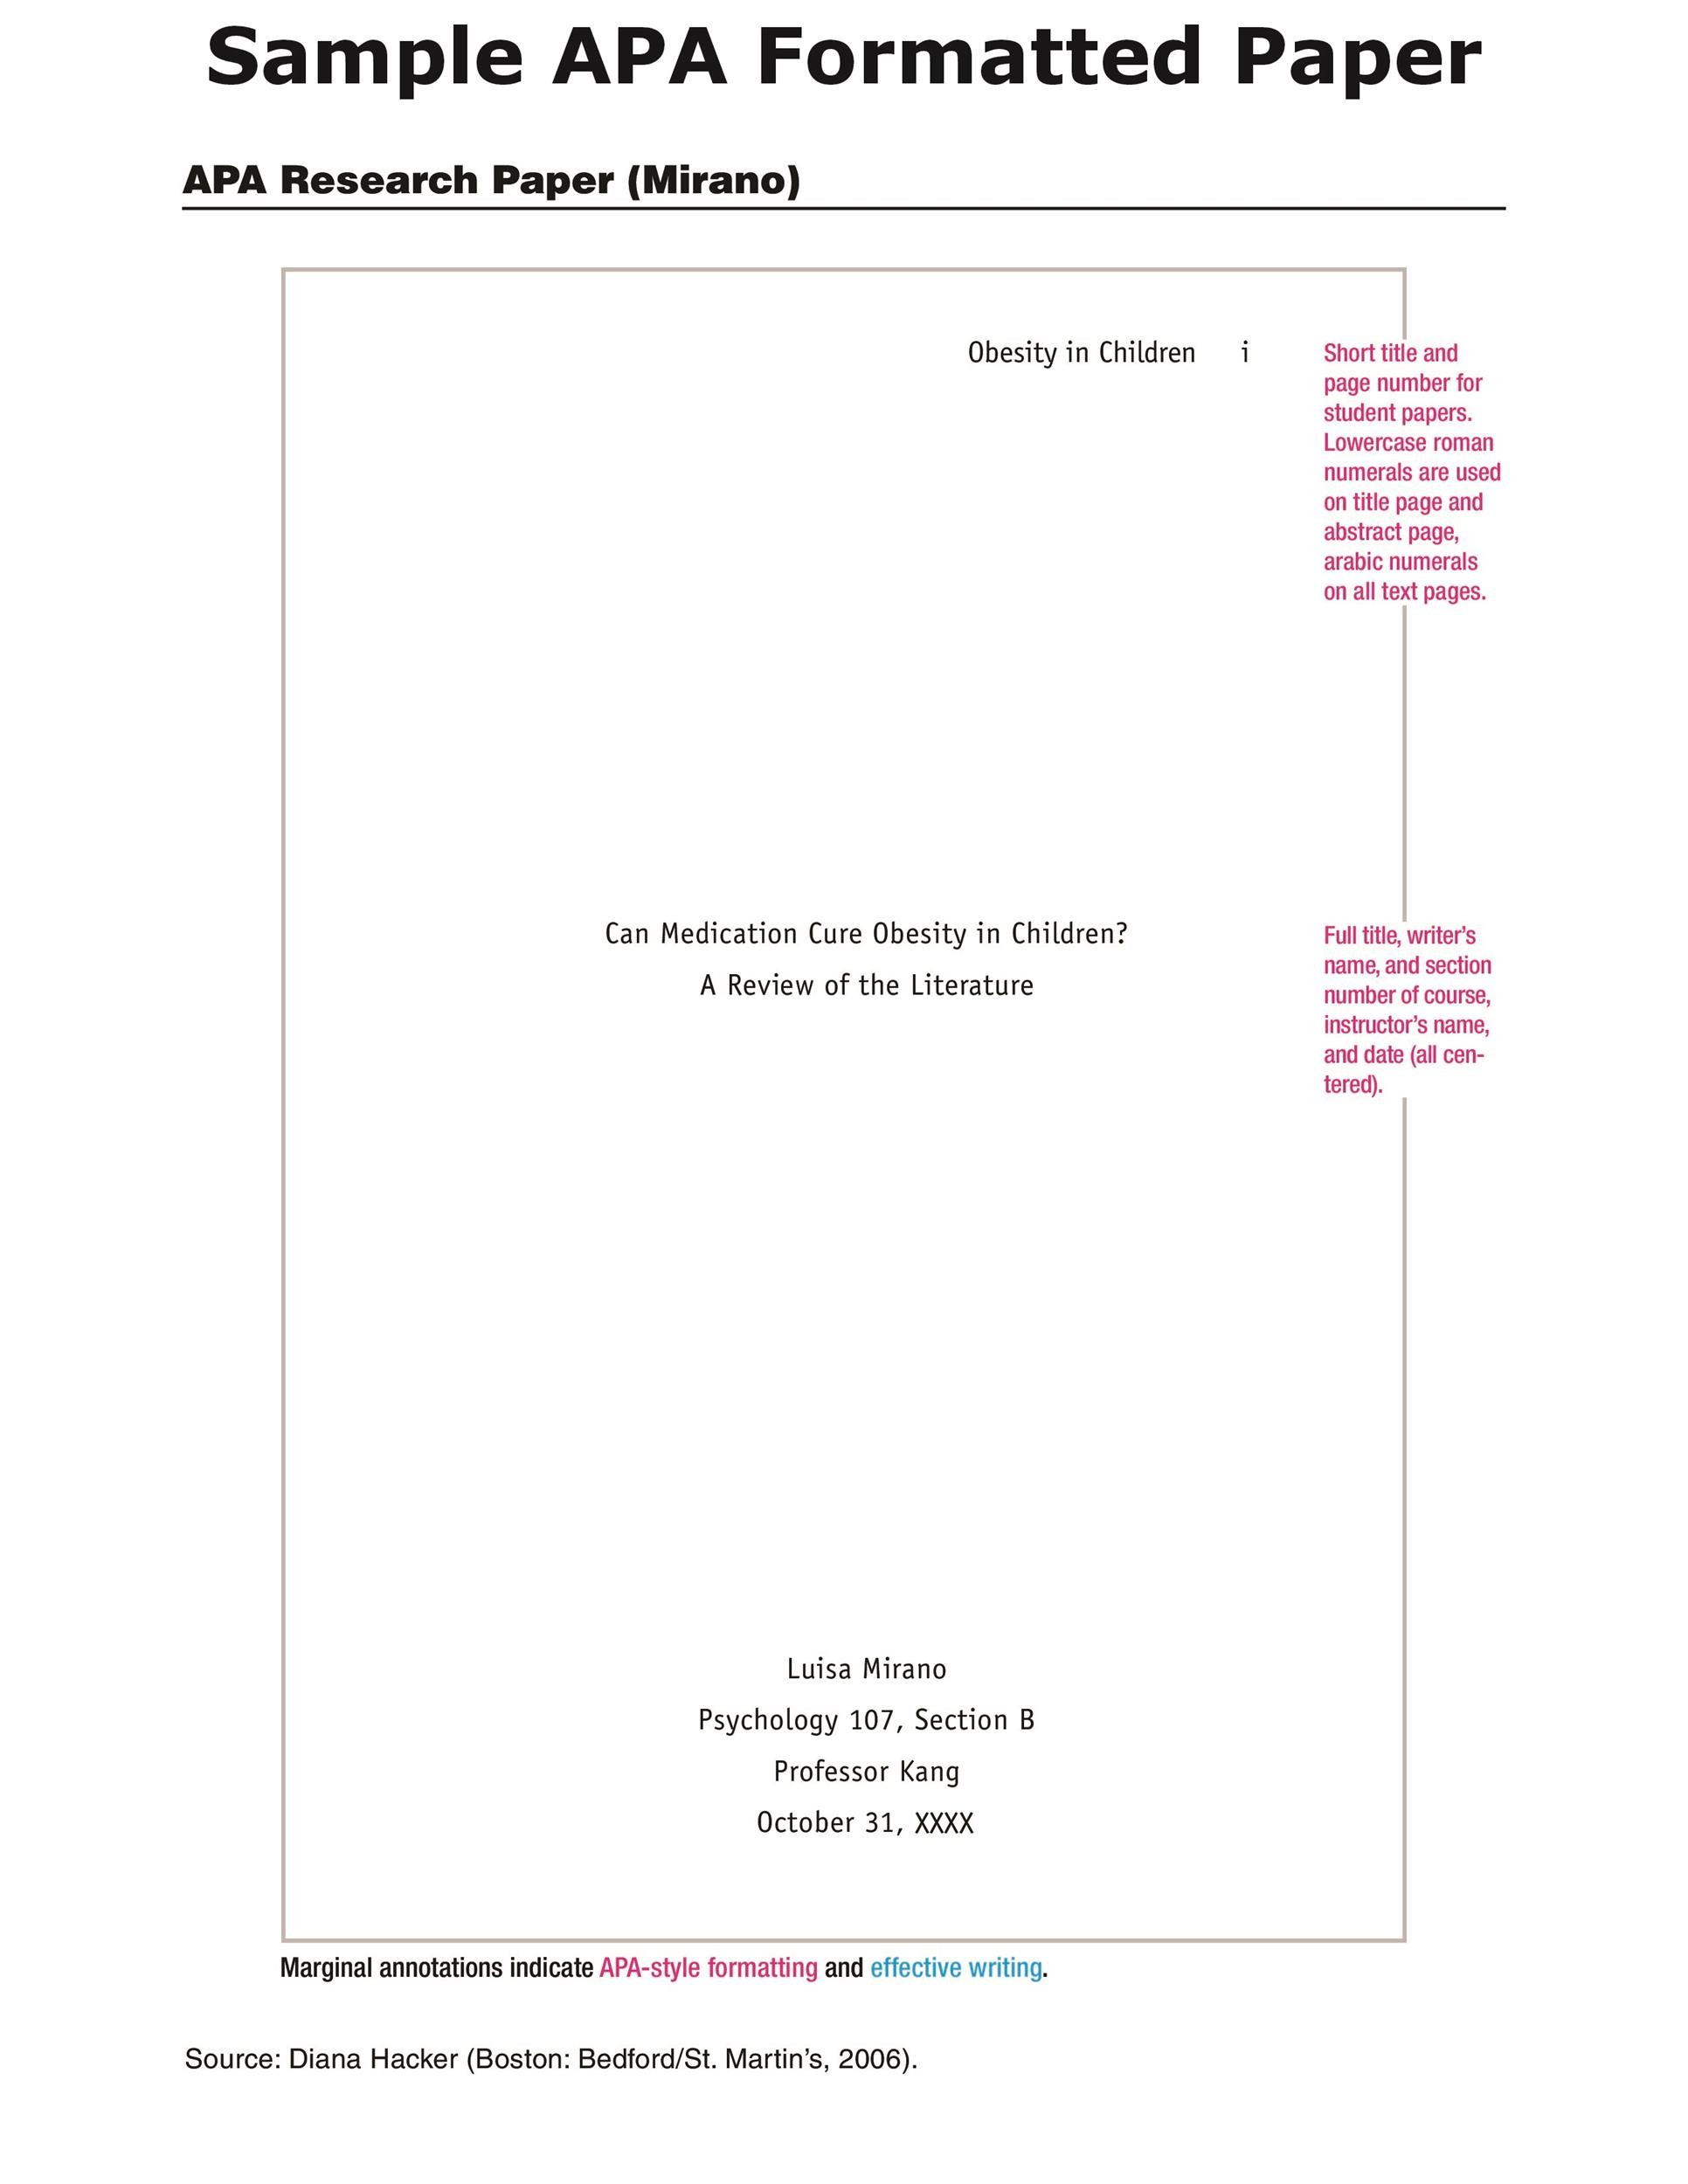 apa citation and referencing guide pdf